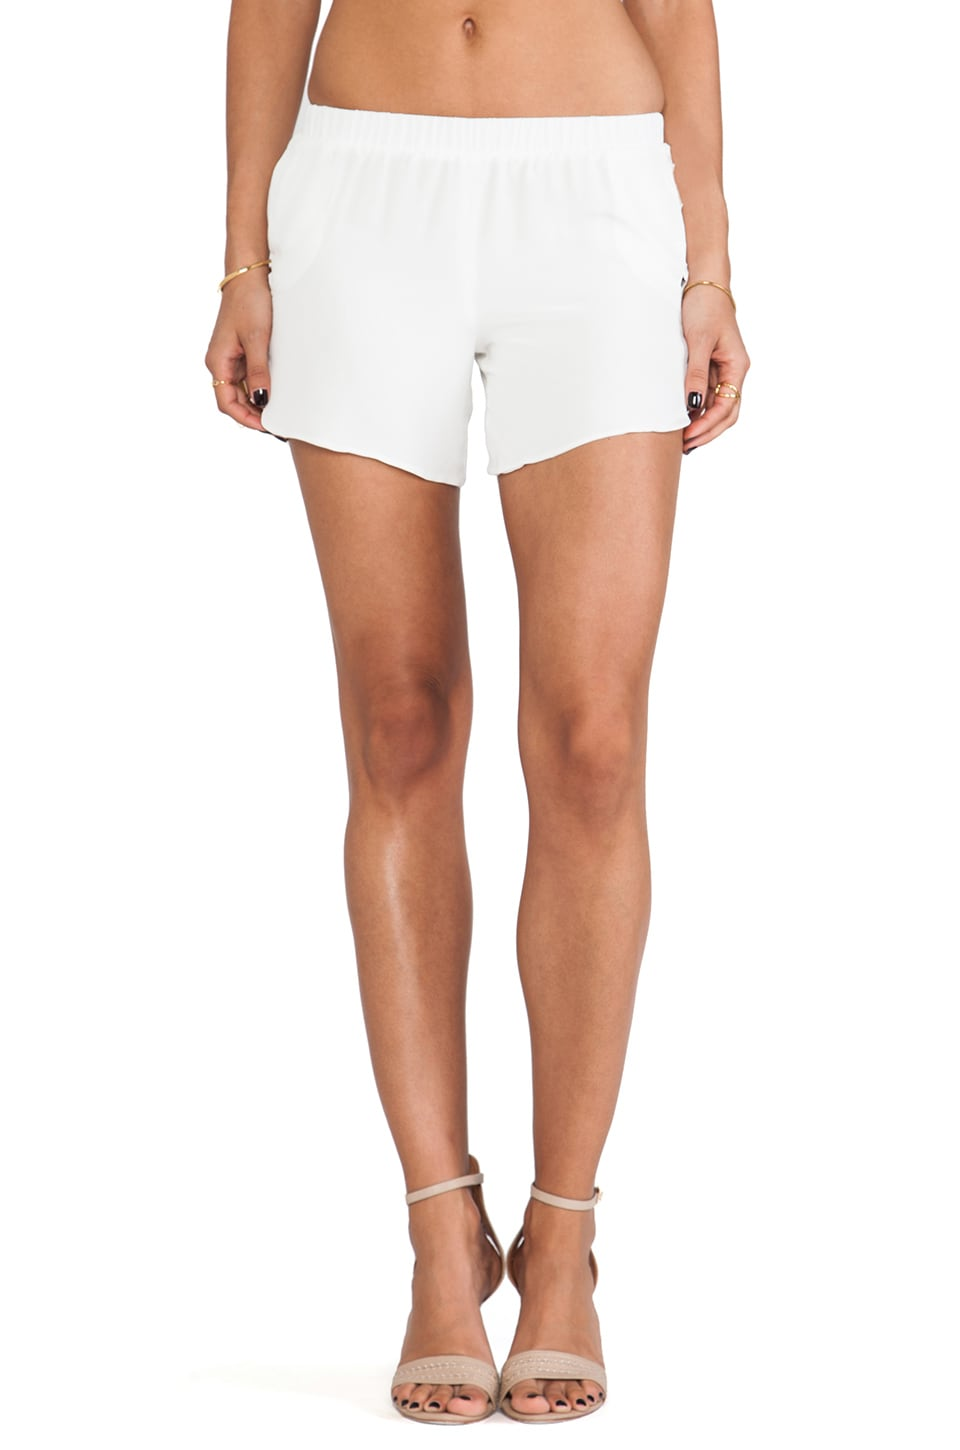 Assali Capra Shorts in White